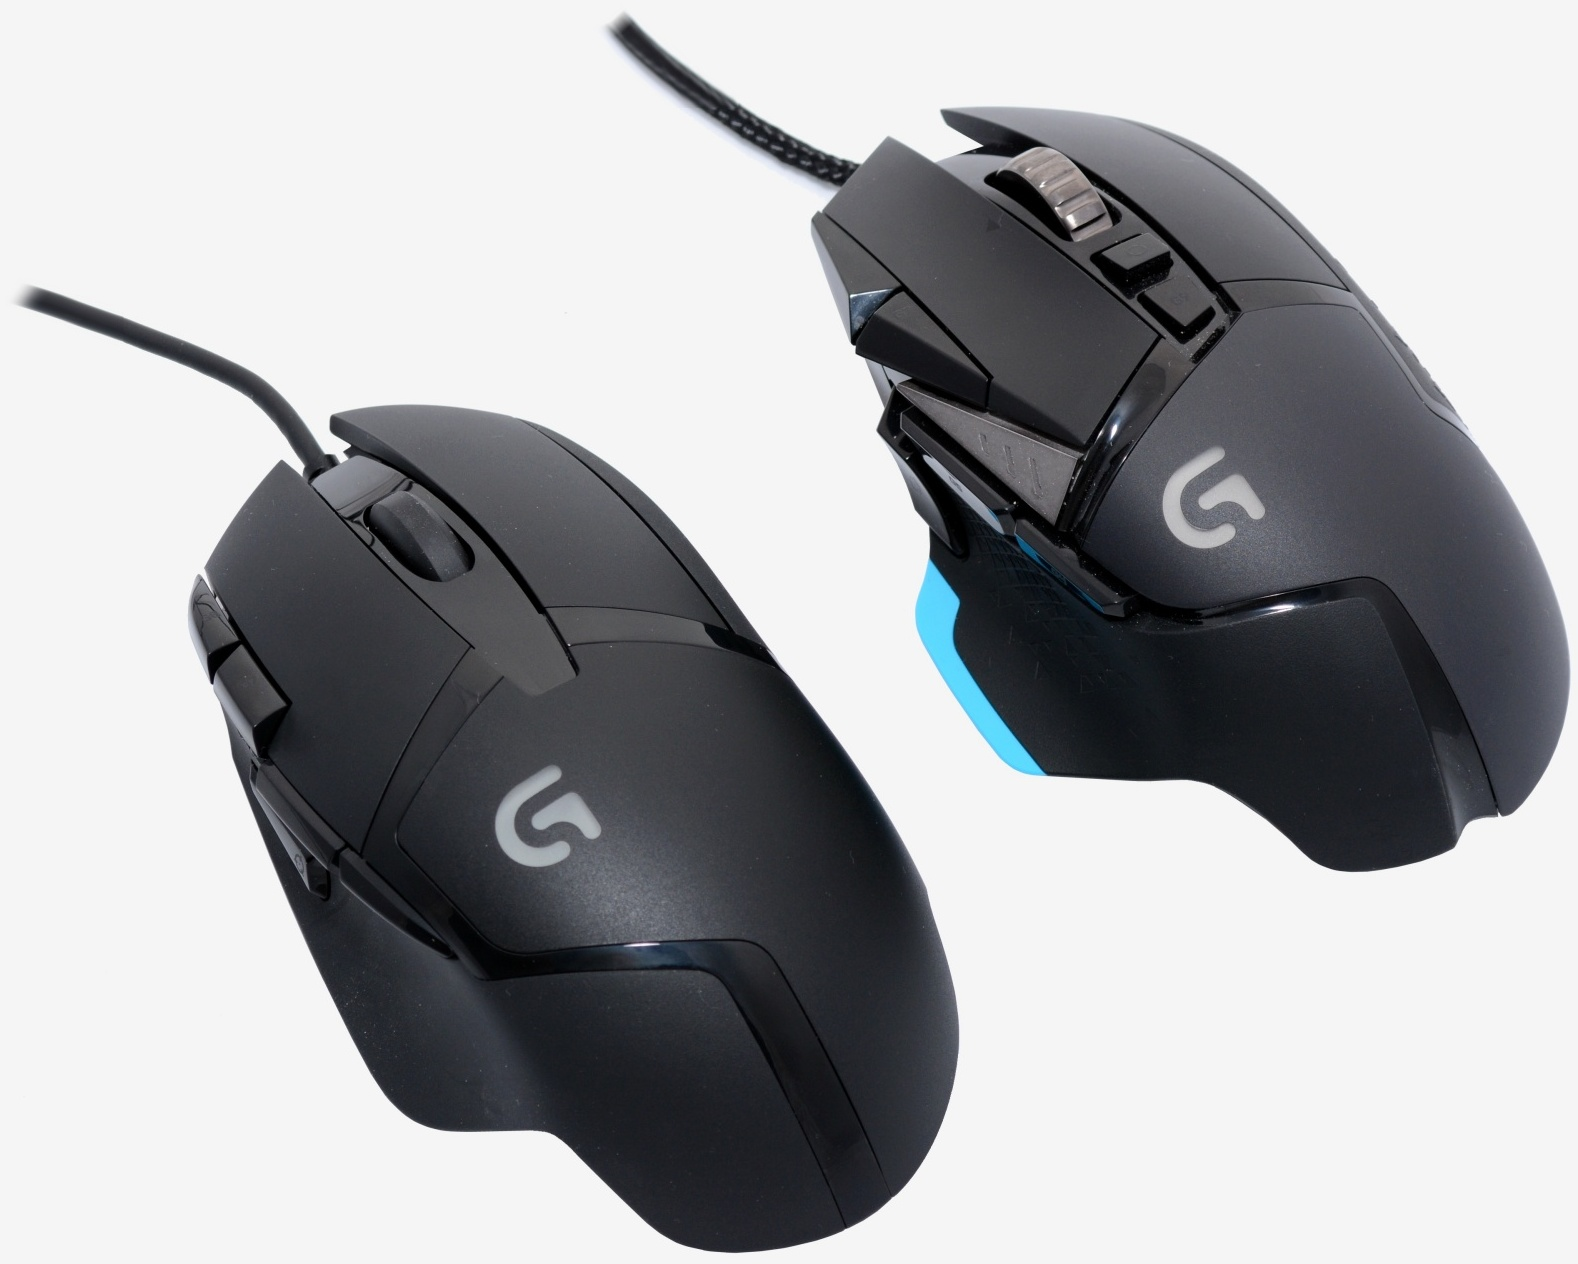 Logitech G402 Hyperion Fury Mouse Review - TechSpot